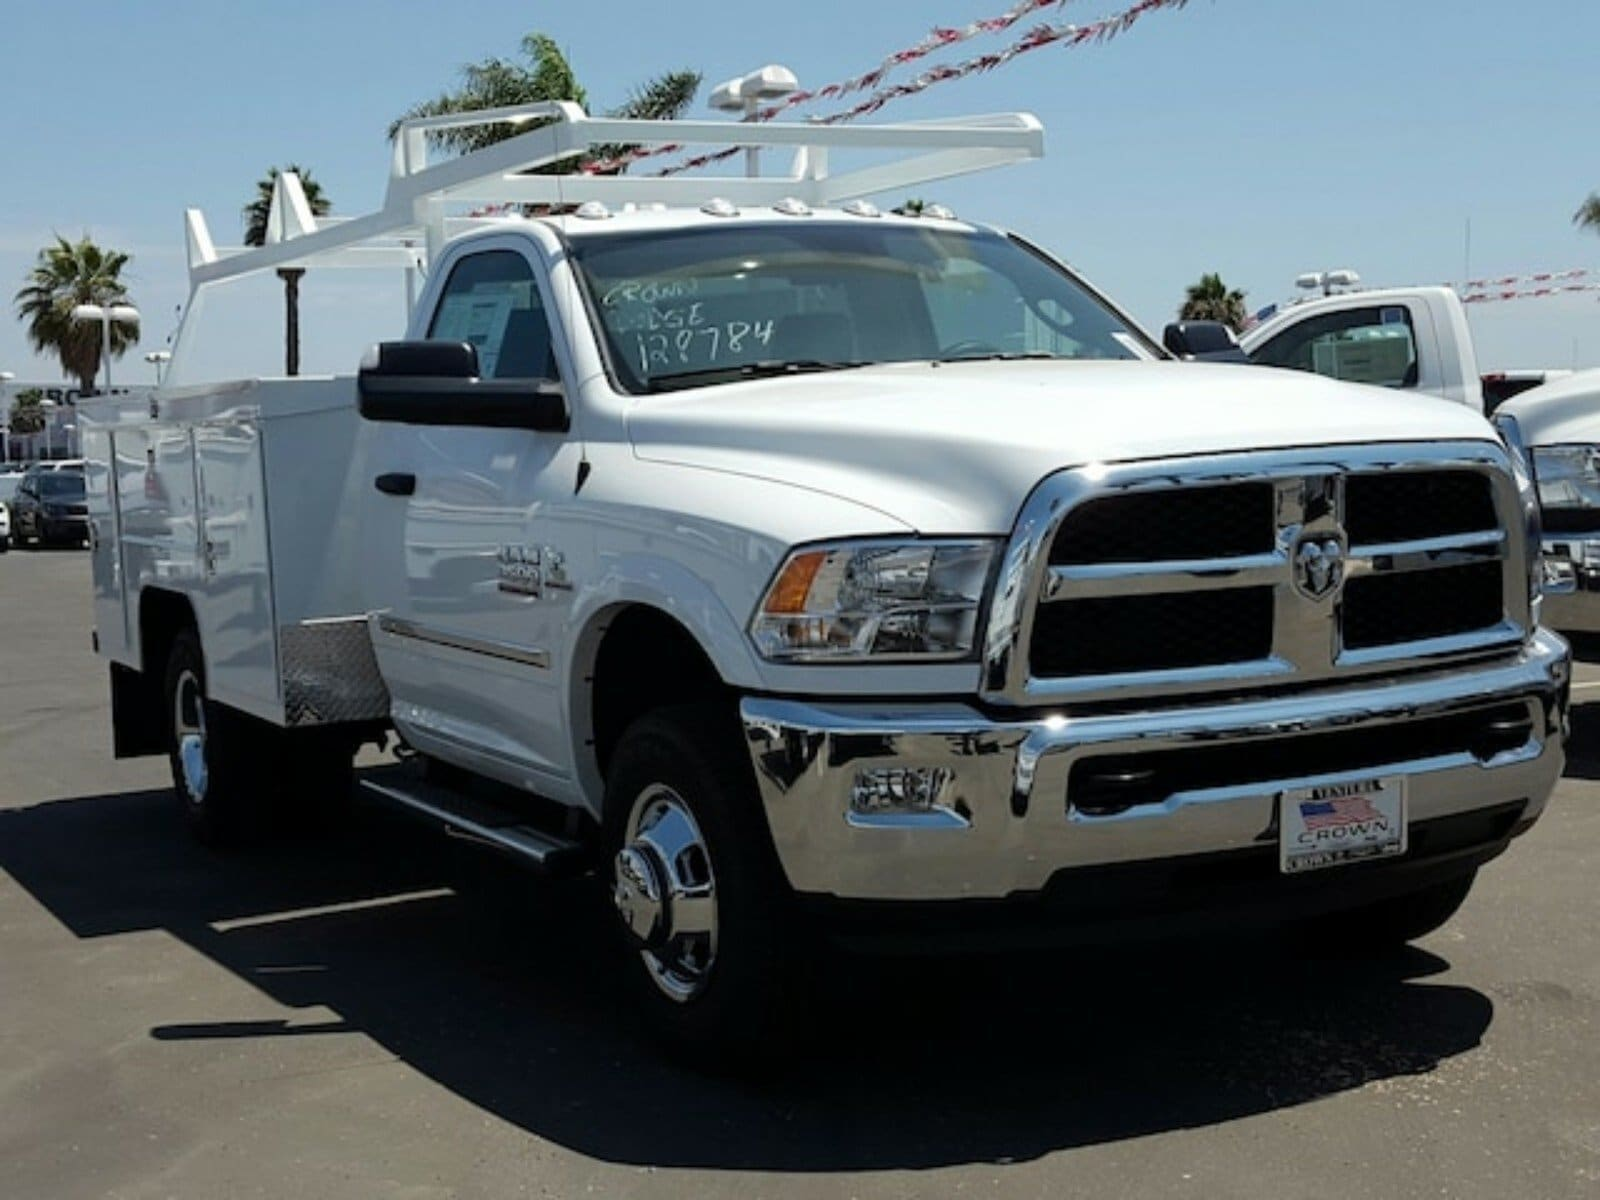 2018 Ram 3500 Regular Cab DRW, Scelzi Contractor Body #E1667 - photo 4